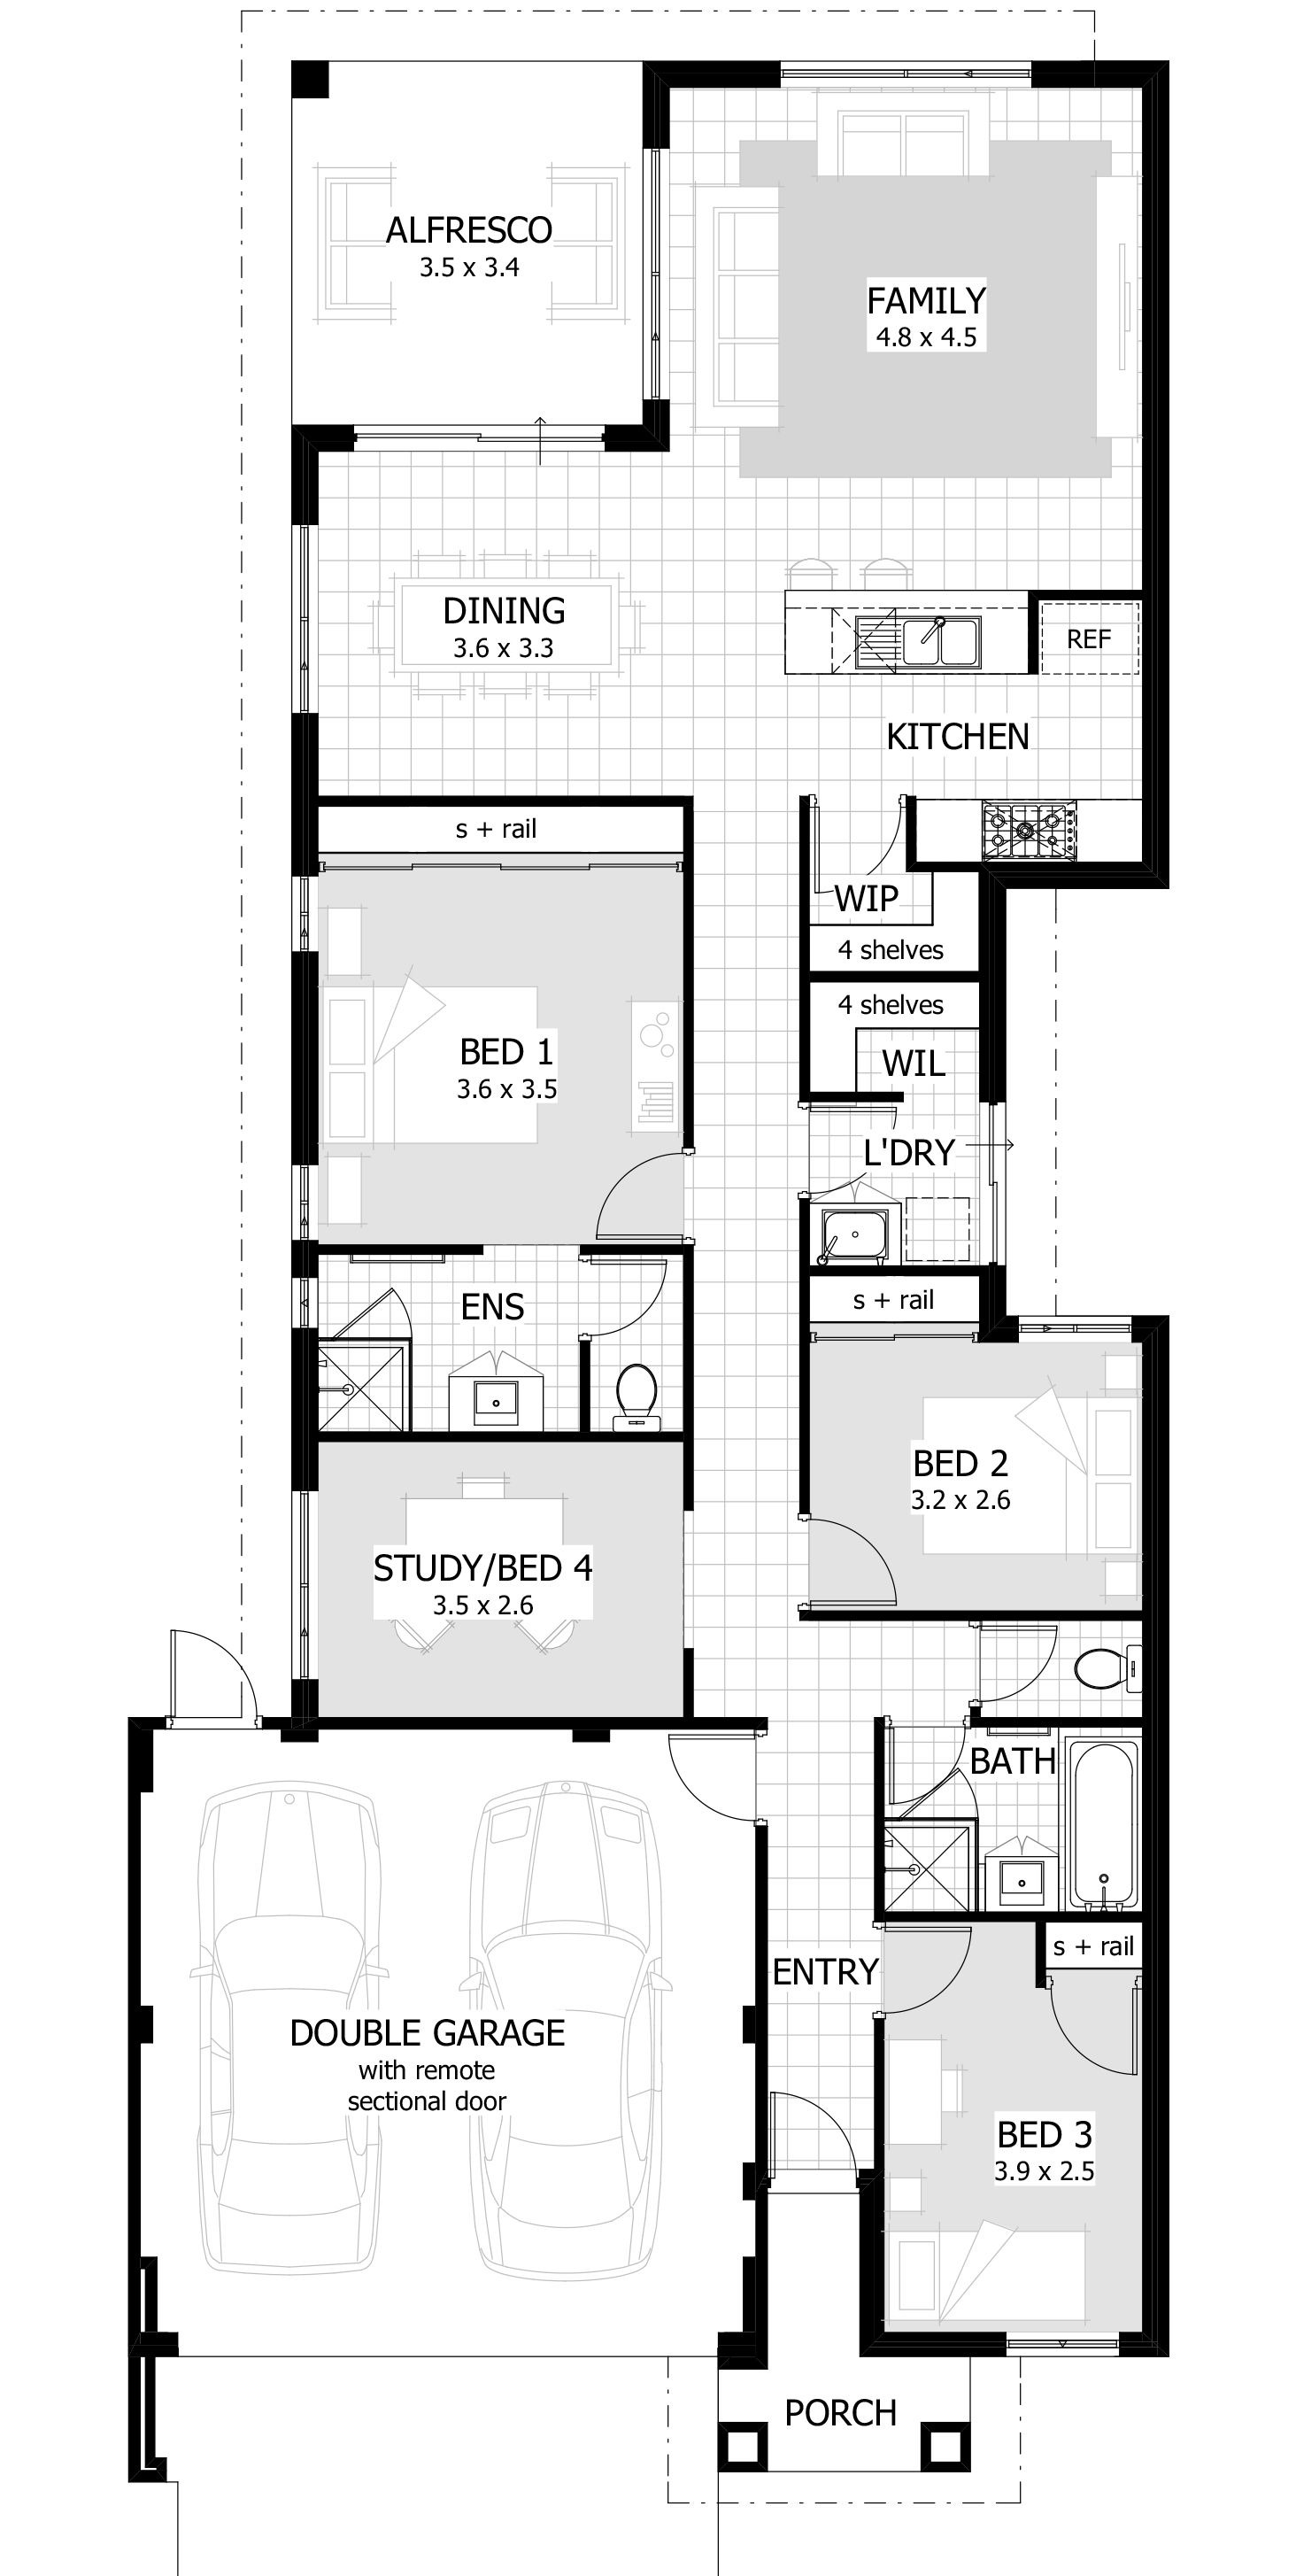 Small Lot Home Designs Fresh Narrow Lot Single Storey Homes Perth with Images